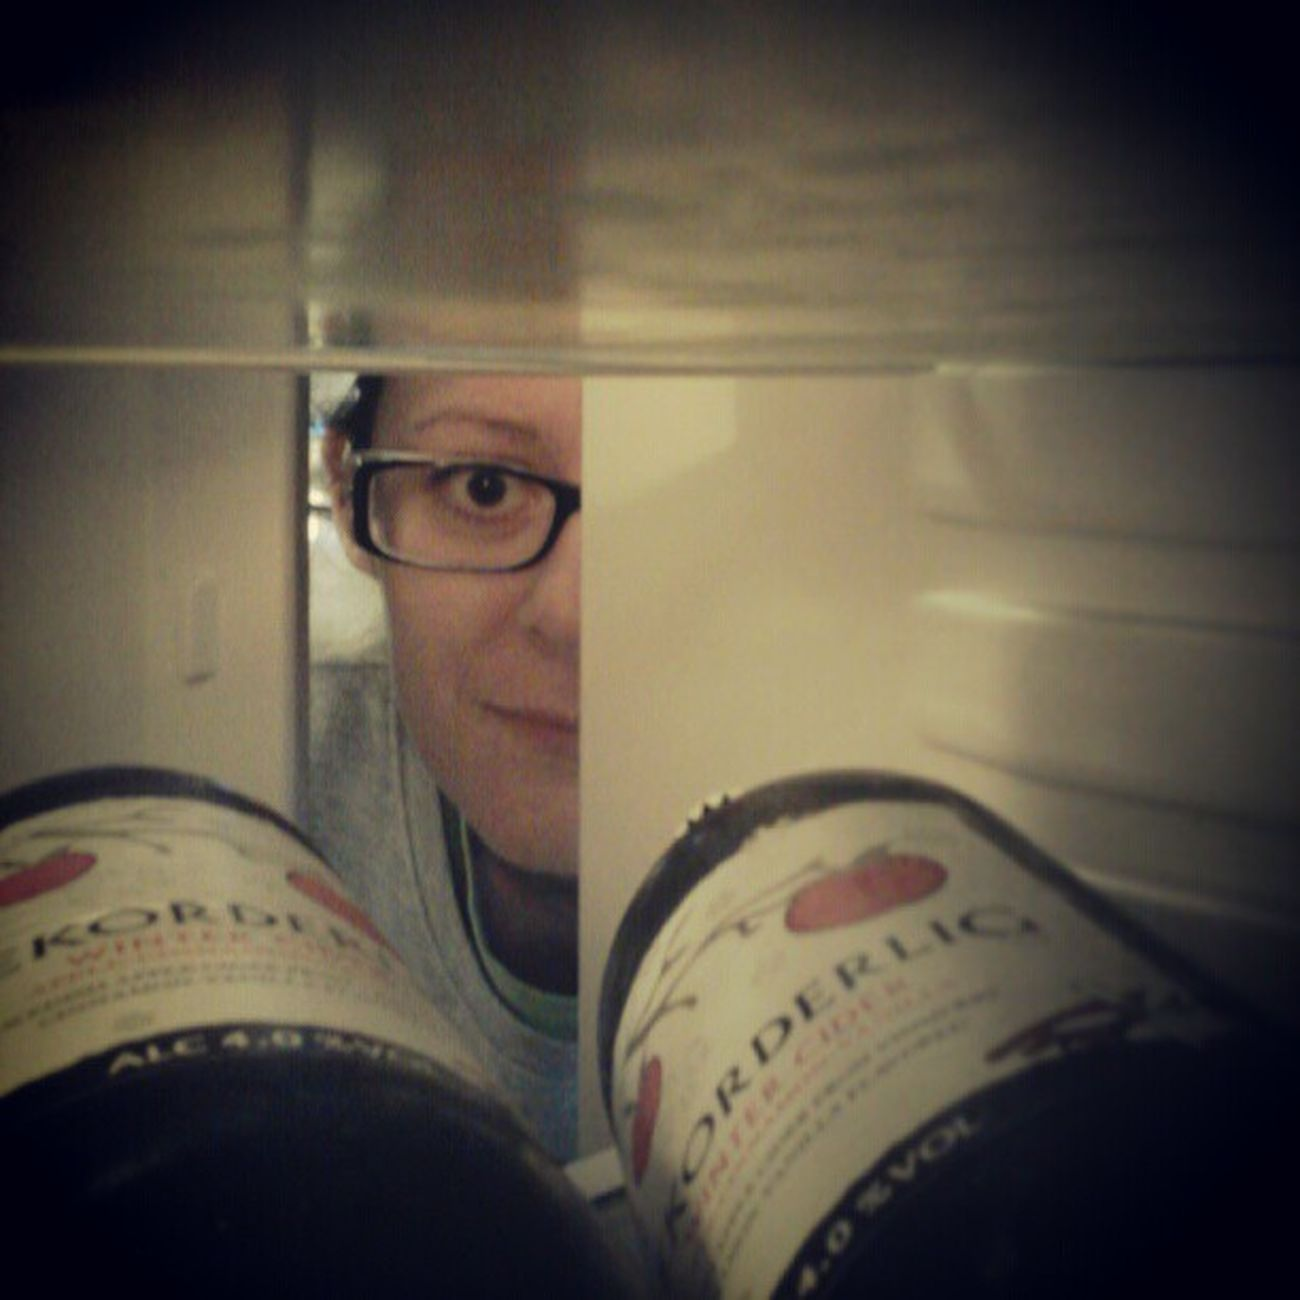 February photo-a-day challenge. Day 15. In the fridge. Fmsphotoaday Fridge Rekorderlig Cider